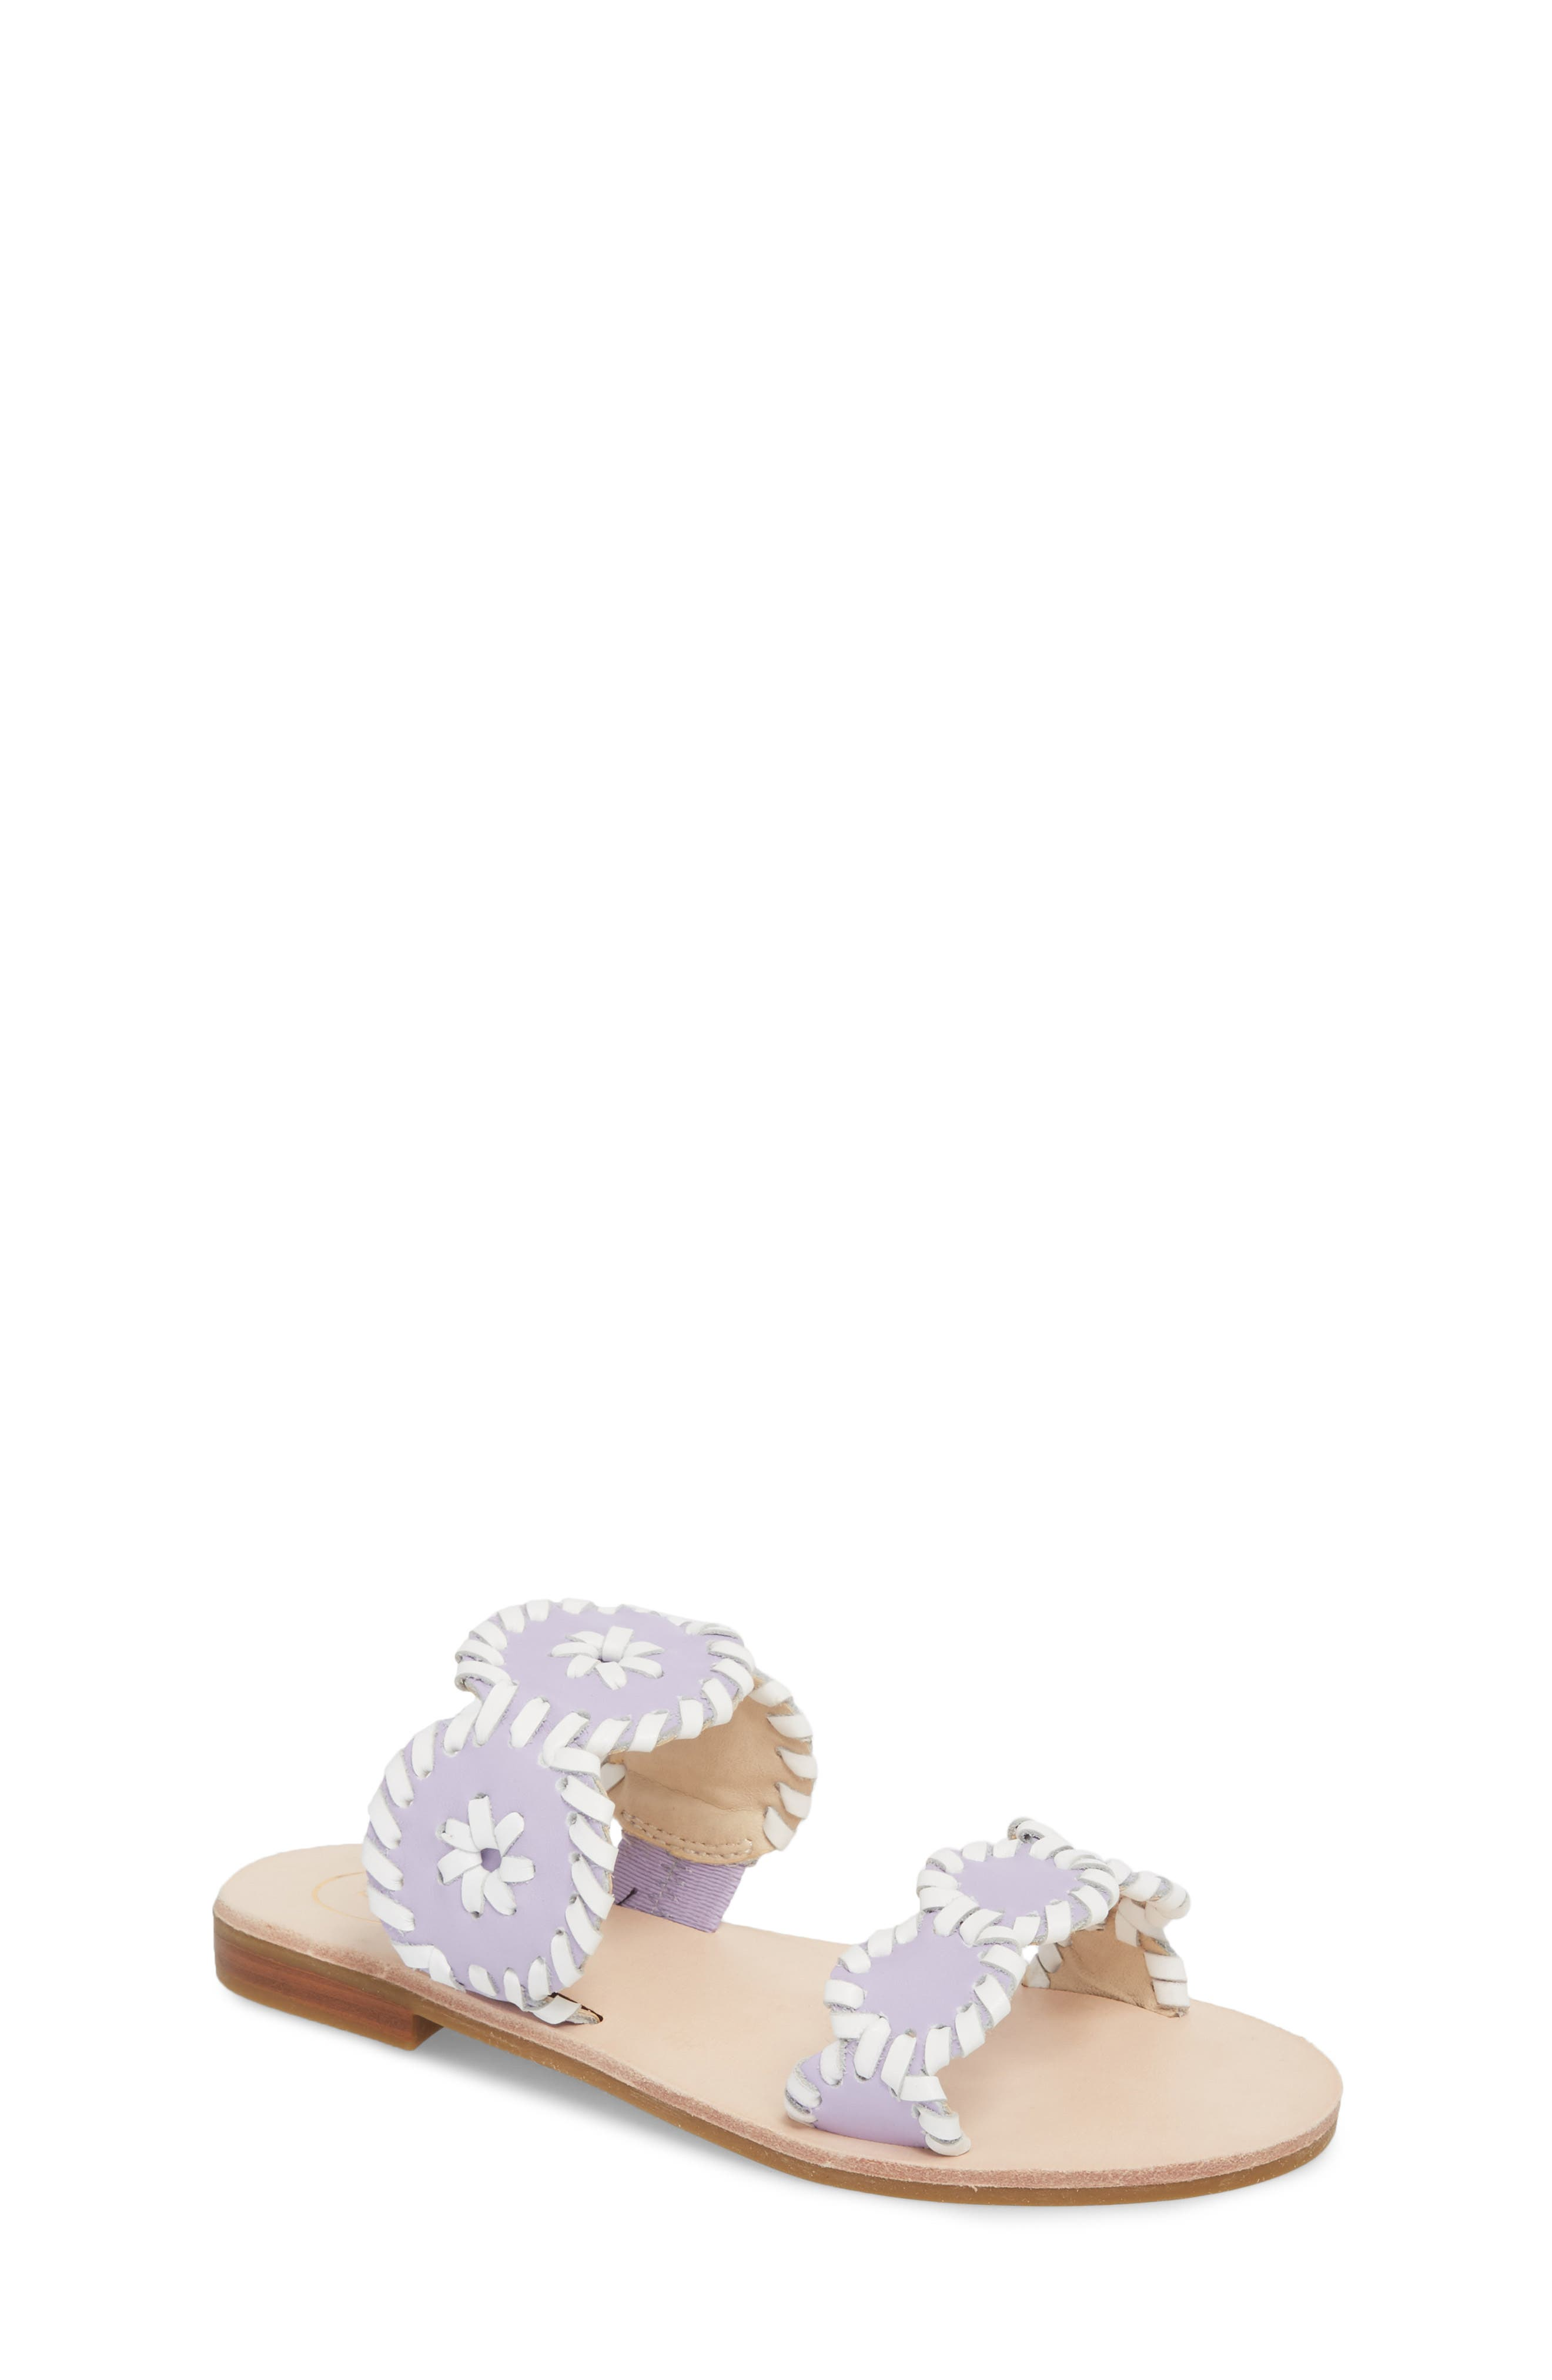 JACK ROGERS, Miss Lauren Sandal, Main thumbnail 1, color, LILAC/ WHITE LEATHER